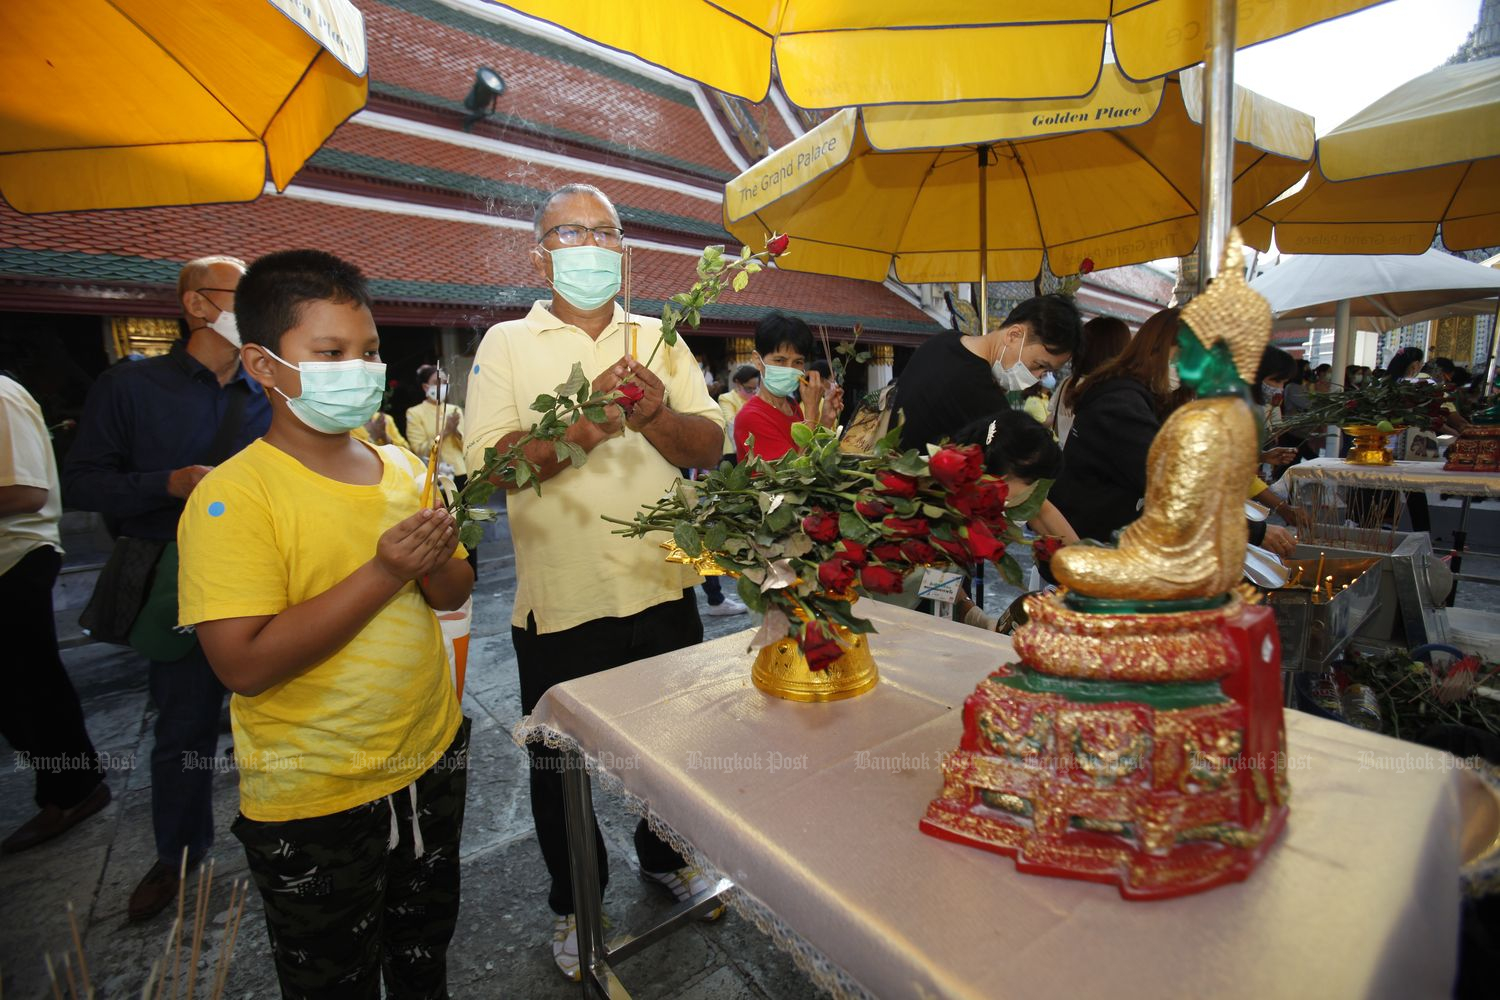 A man and a boy pay homage to the Emerald Buddha at Wat Phra Si Rattana Satsadaram (Wat Phra Kaeo) in Bangkok on the New Year occasion on Friday afternoon. (Photo by Nutthawat Wichieanbut)